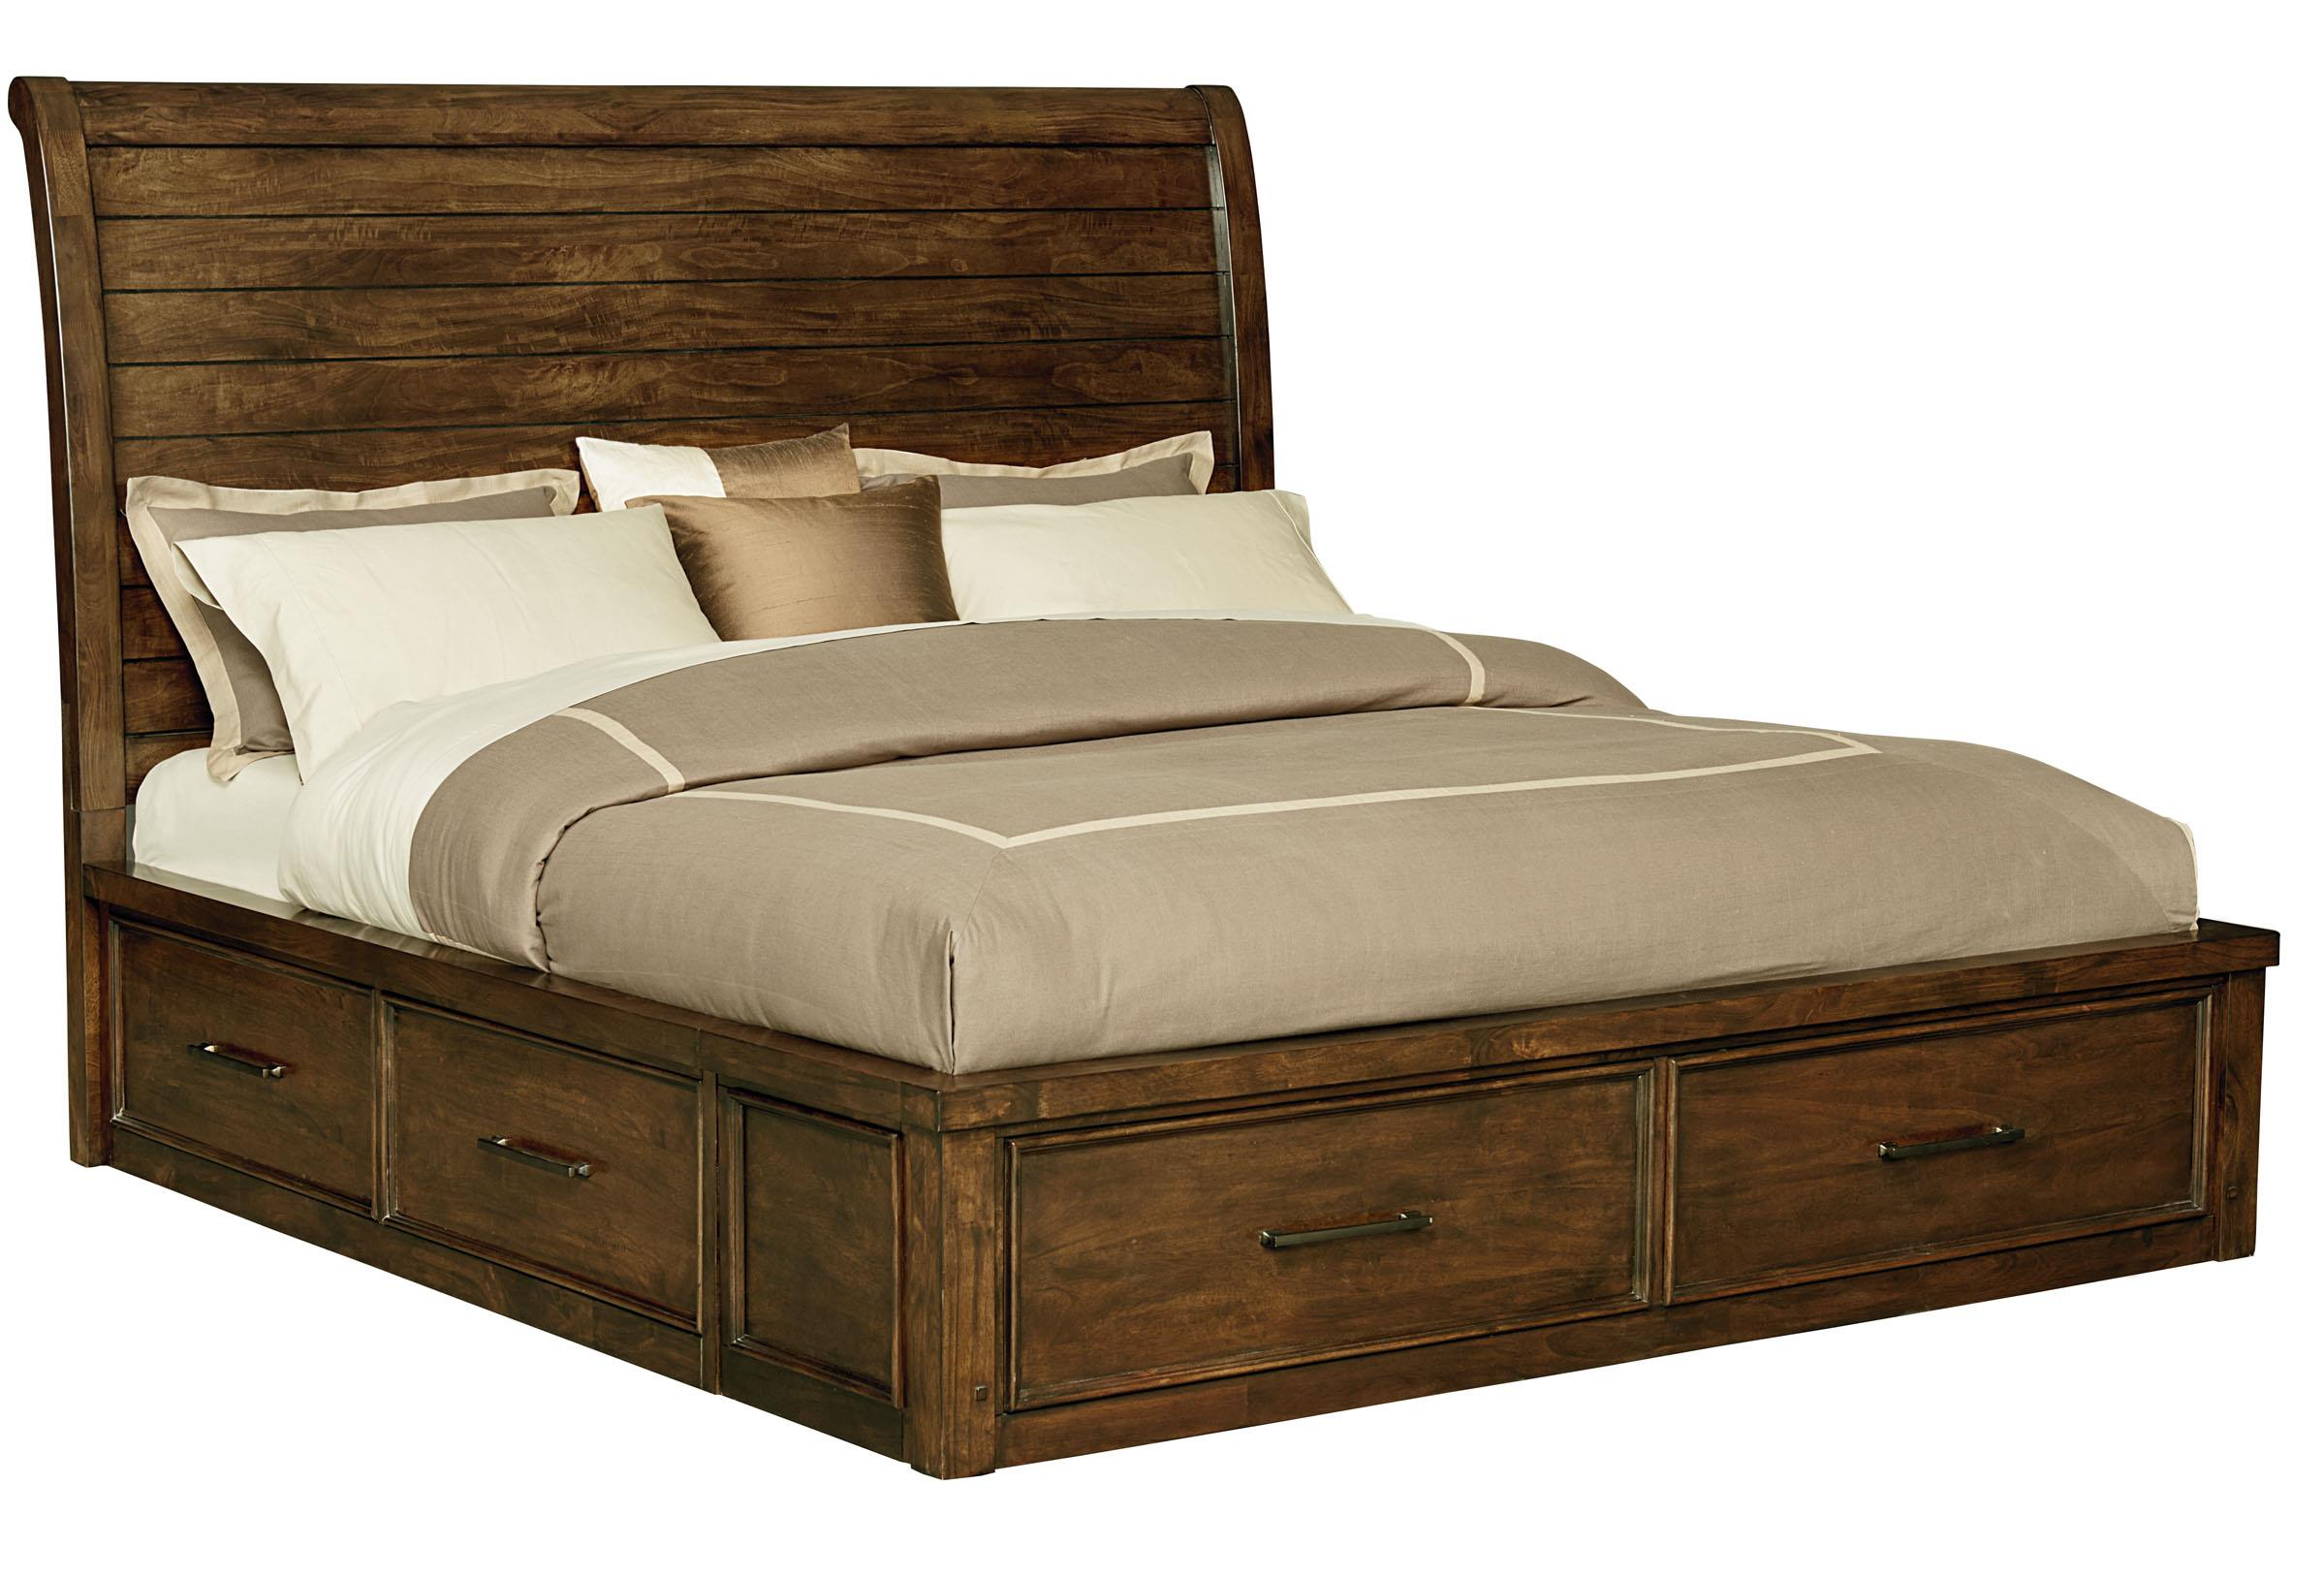 Standard Furniture Cameron Queen Sleigh Bed - Item Number: 85151+52+53